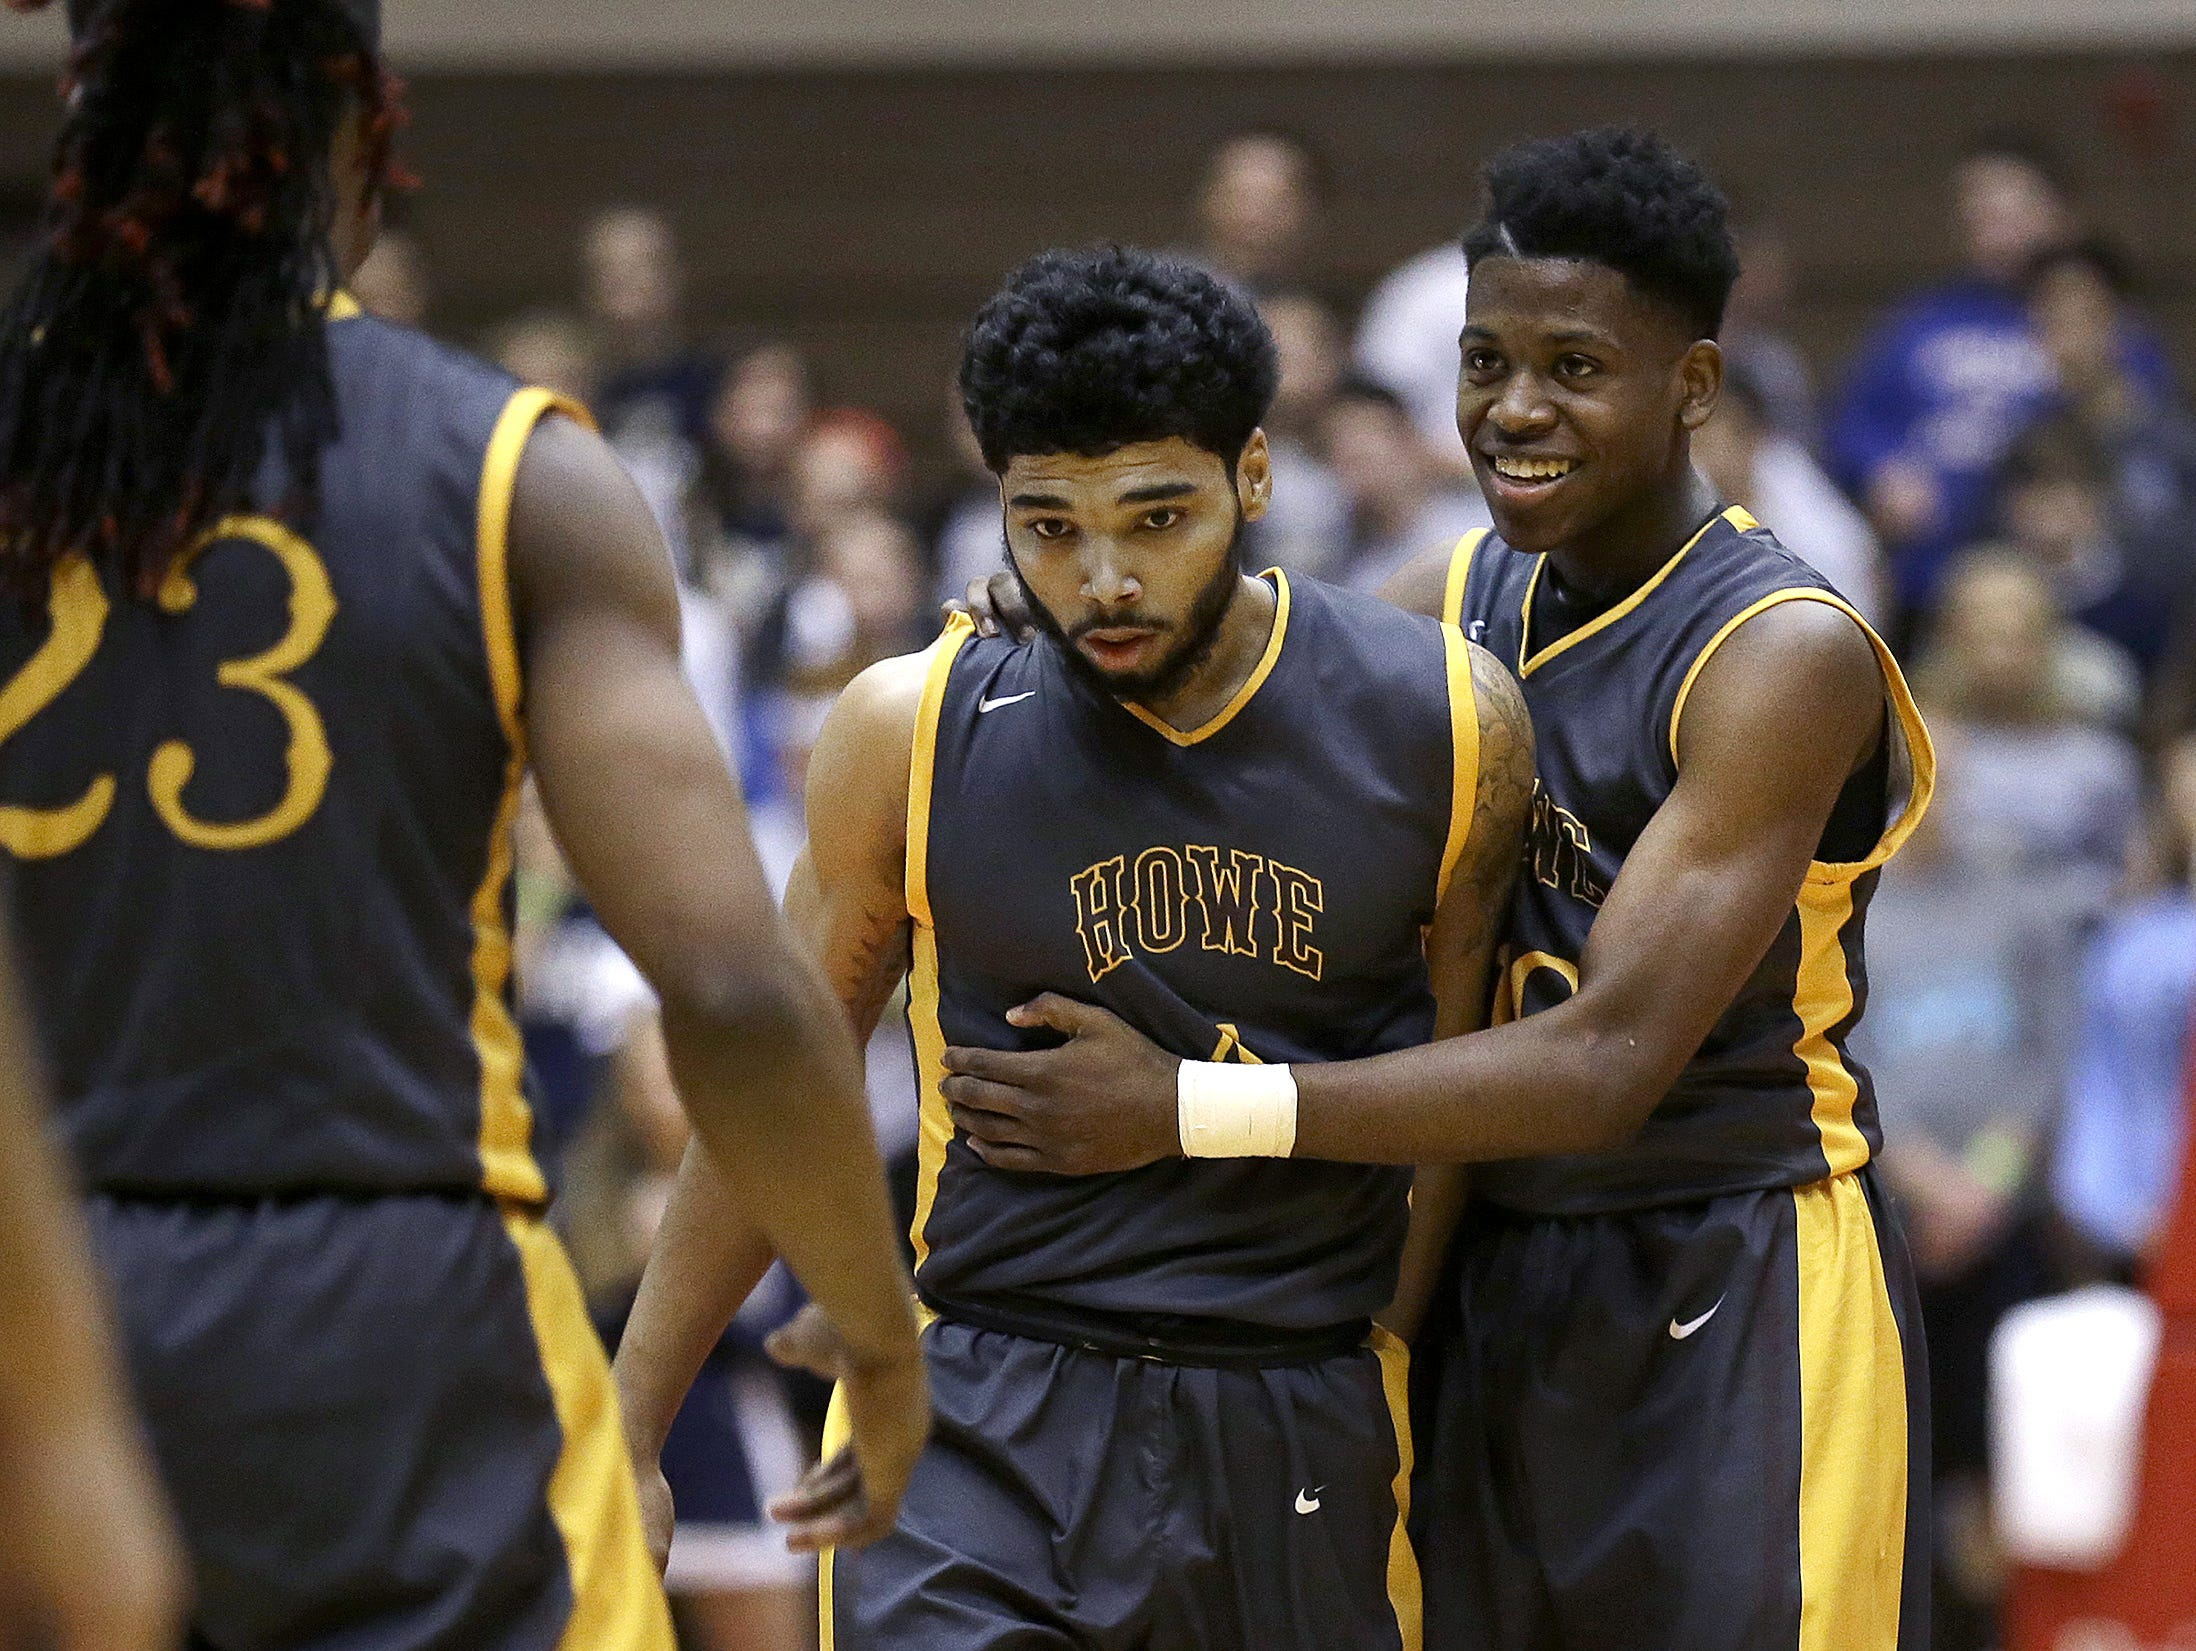 """Howe's Rashawn Rush, right, begins to celebrate with Brian """"Kip"""" Warren (center) as they defeated Providence in the IHSAA Class 2A semistate March 19, 2016."""